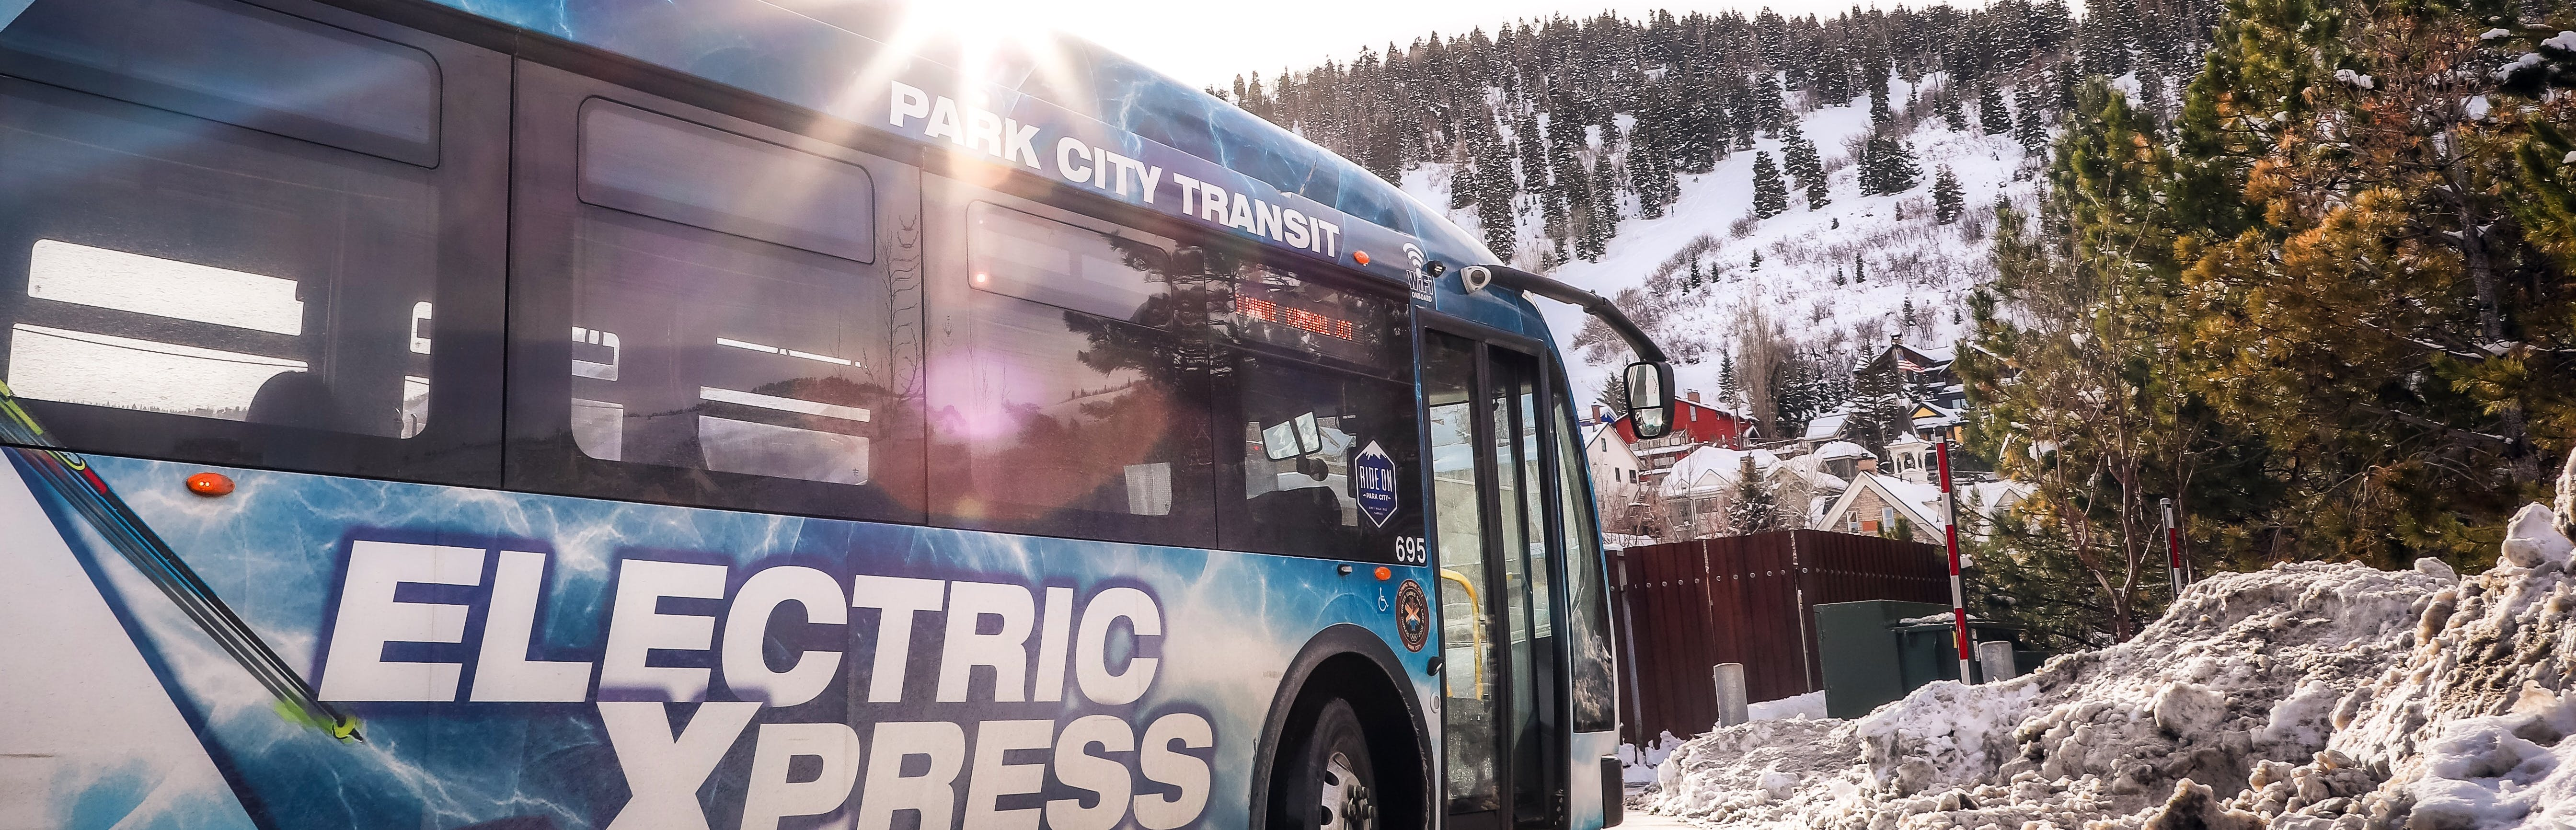 Image depicts a Park City Transit bus parked at a curb, surrounded by snow.